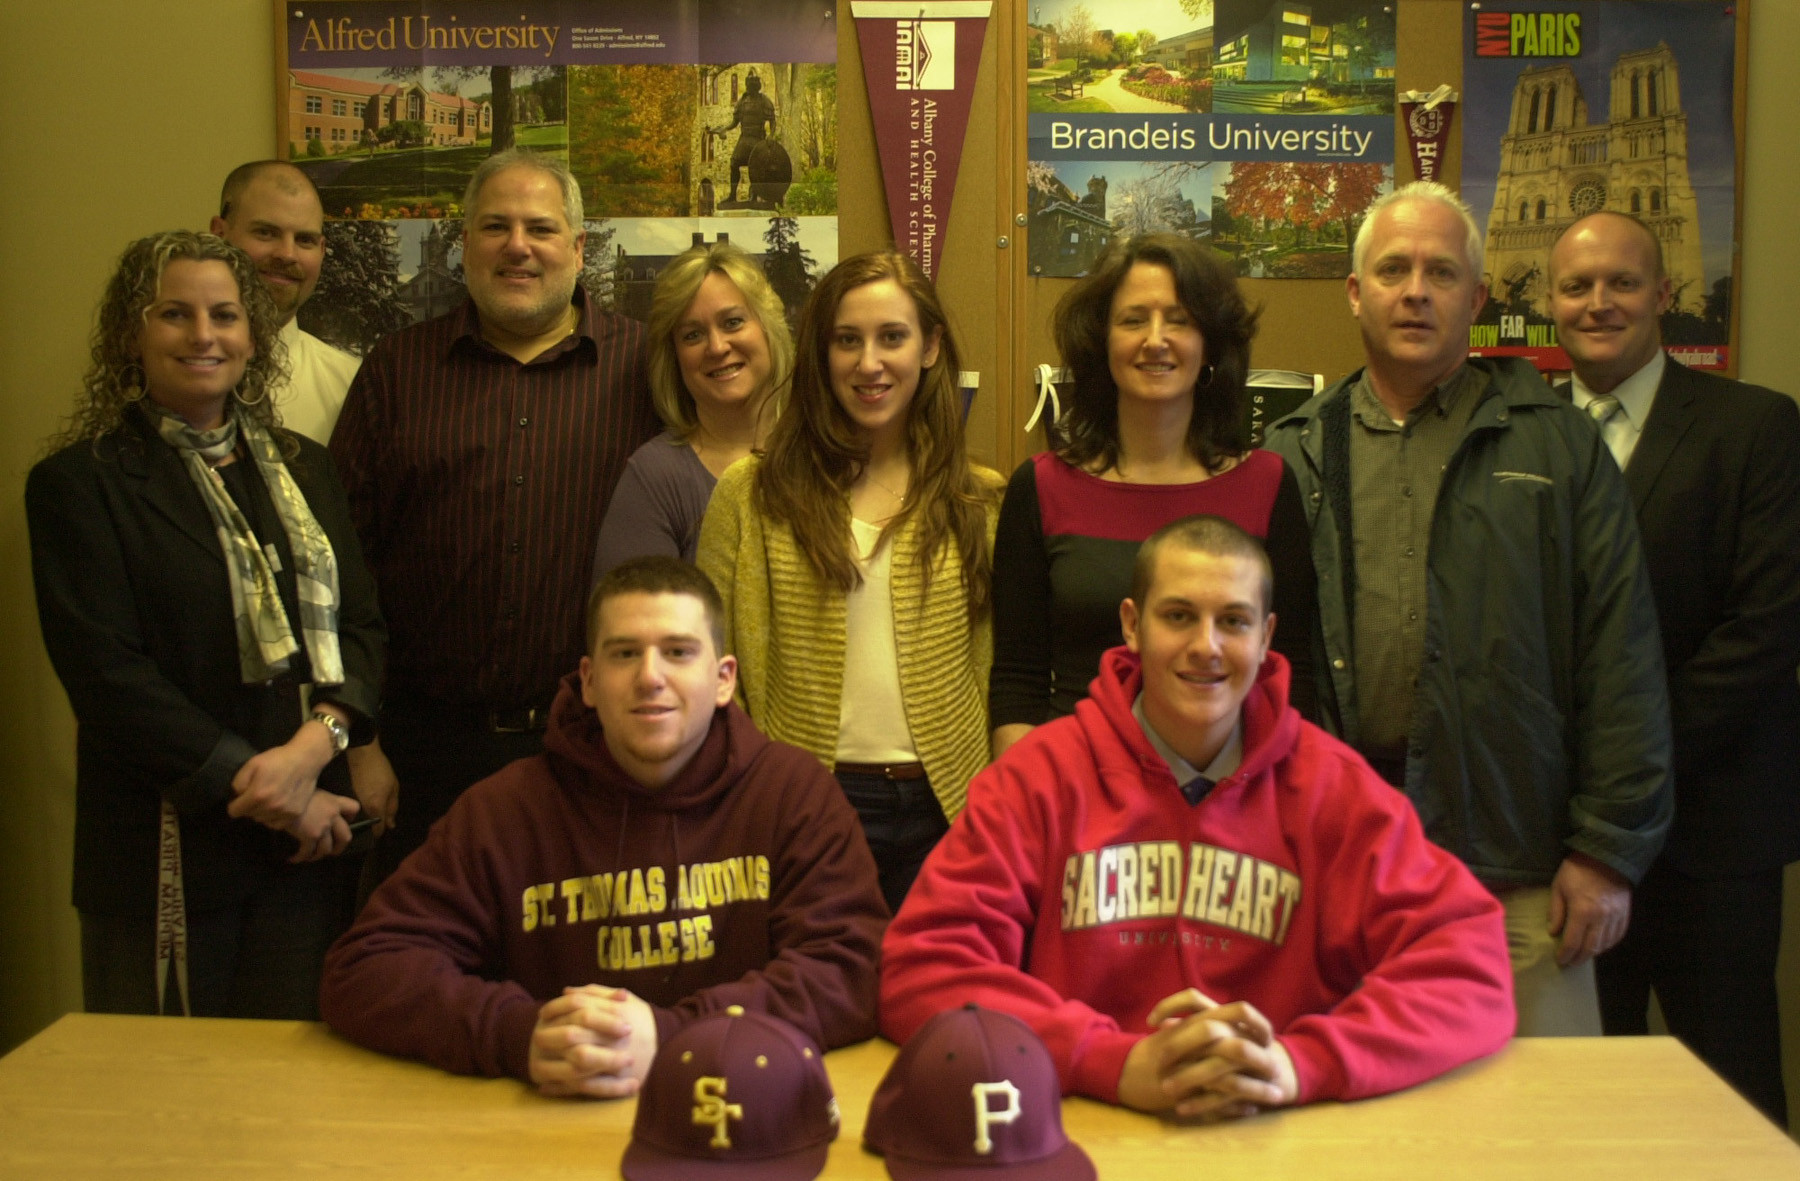 Mepham High School seniors Brian Helft, center left, and Jason Foley have been recruited to play baseball in college. They were joined here by their families and Mepham administrators.